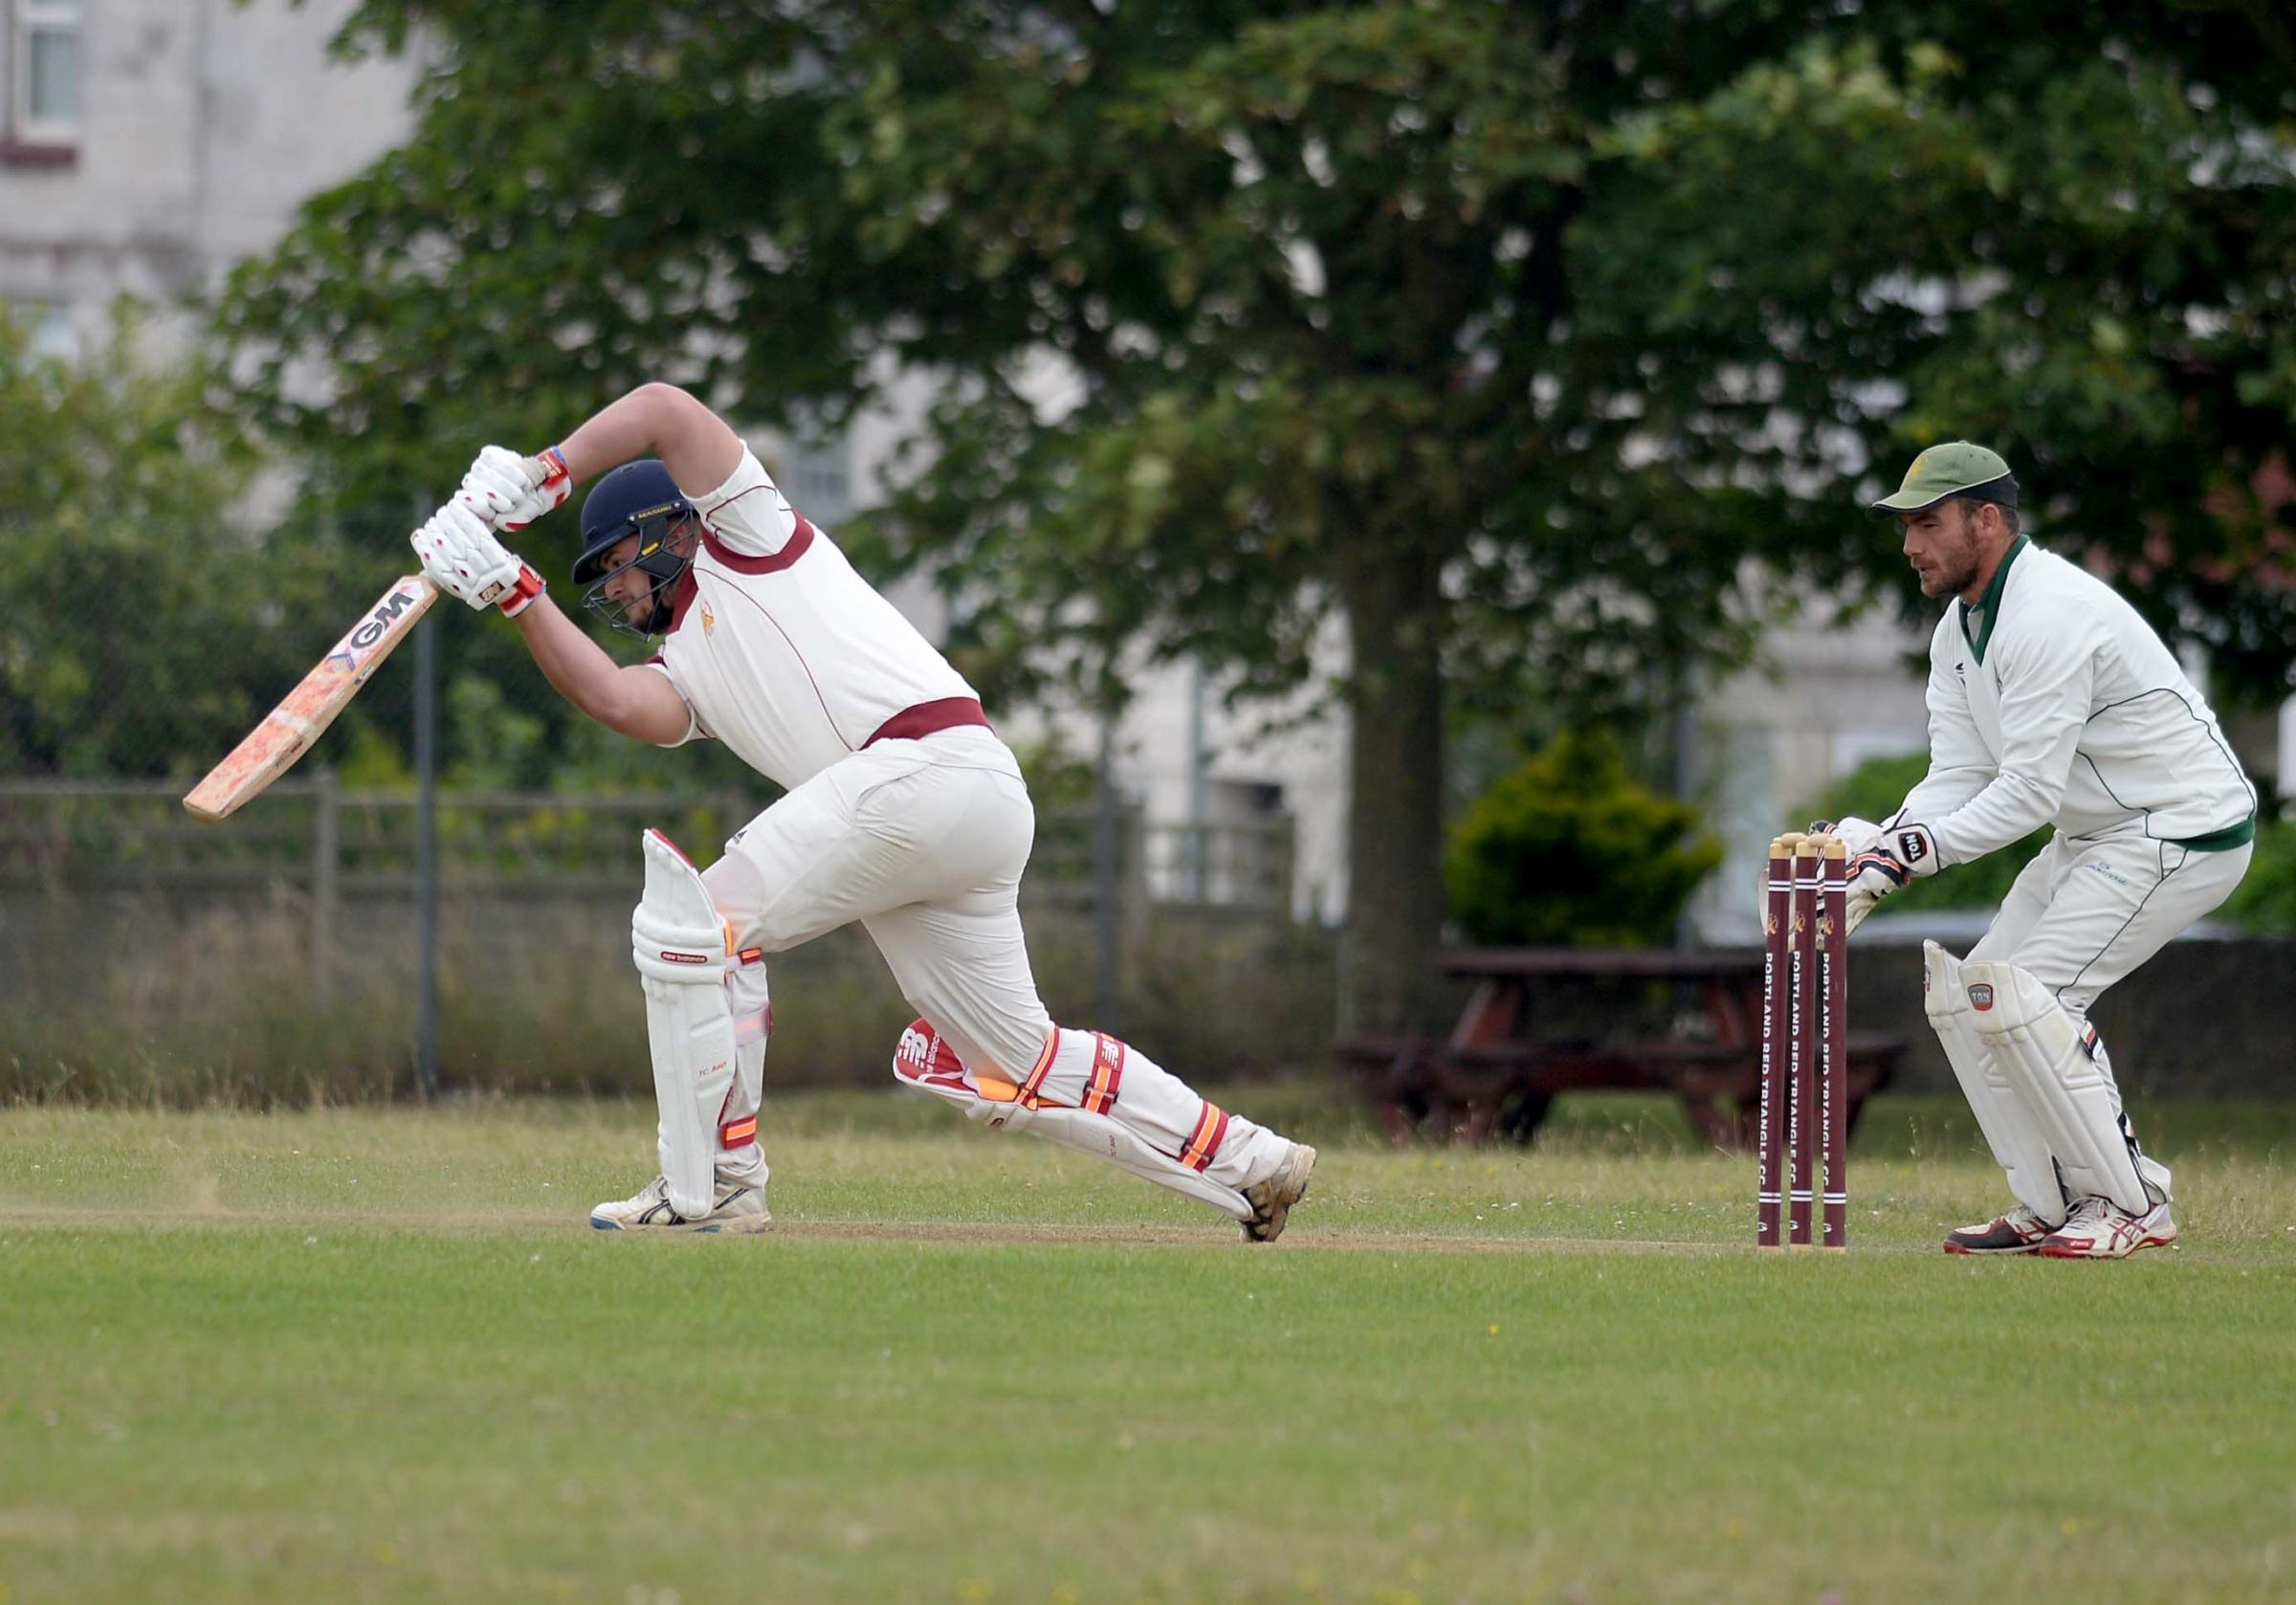 TOP SCORER: Callan Laws hit a superb 45 against Marnhull at Reforne                Picture: FINNBARR WEBSTER/F19138